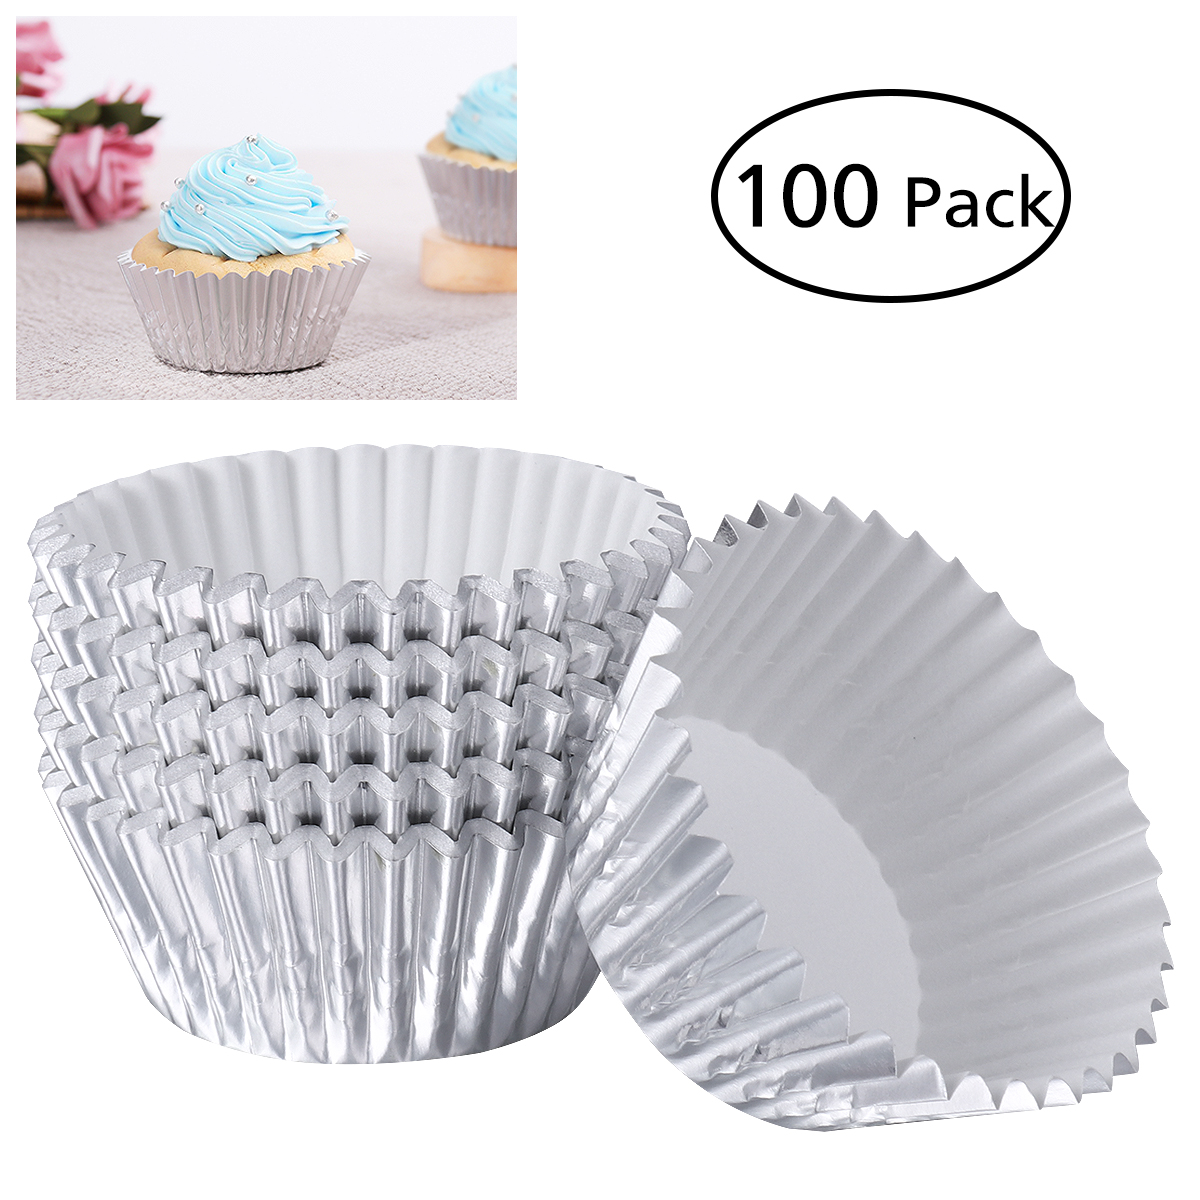 Us 254 39 Offrosenice 100pcs Aluminum Thickened Foil Cups Cupcake Liners Mini Cake Muffin Molds Baking Molds Silver In Cake Molds From Home